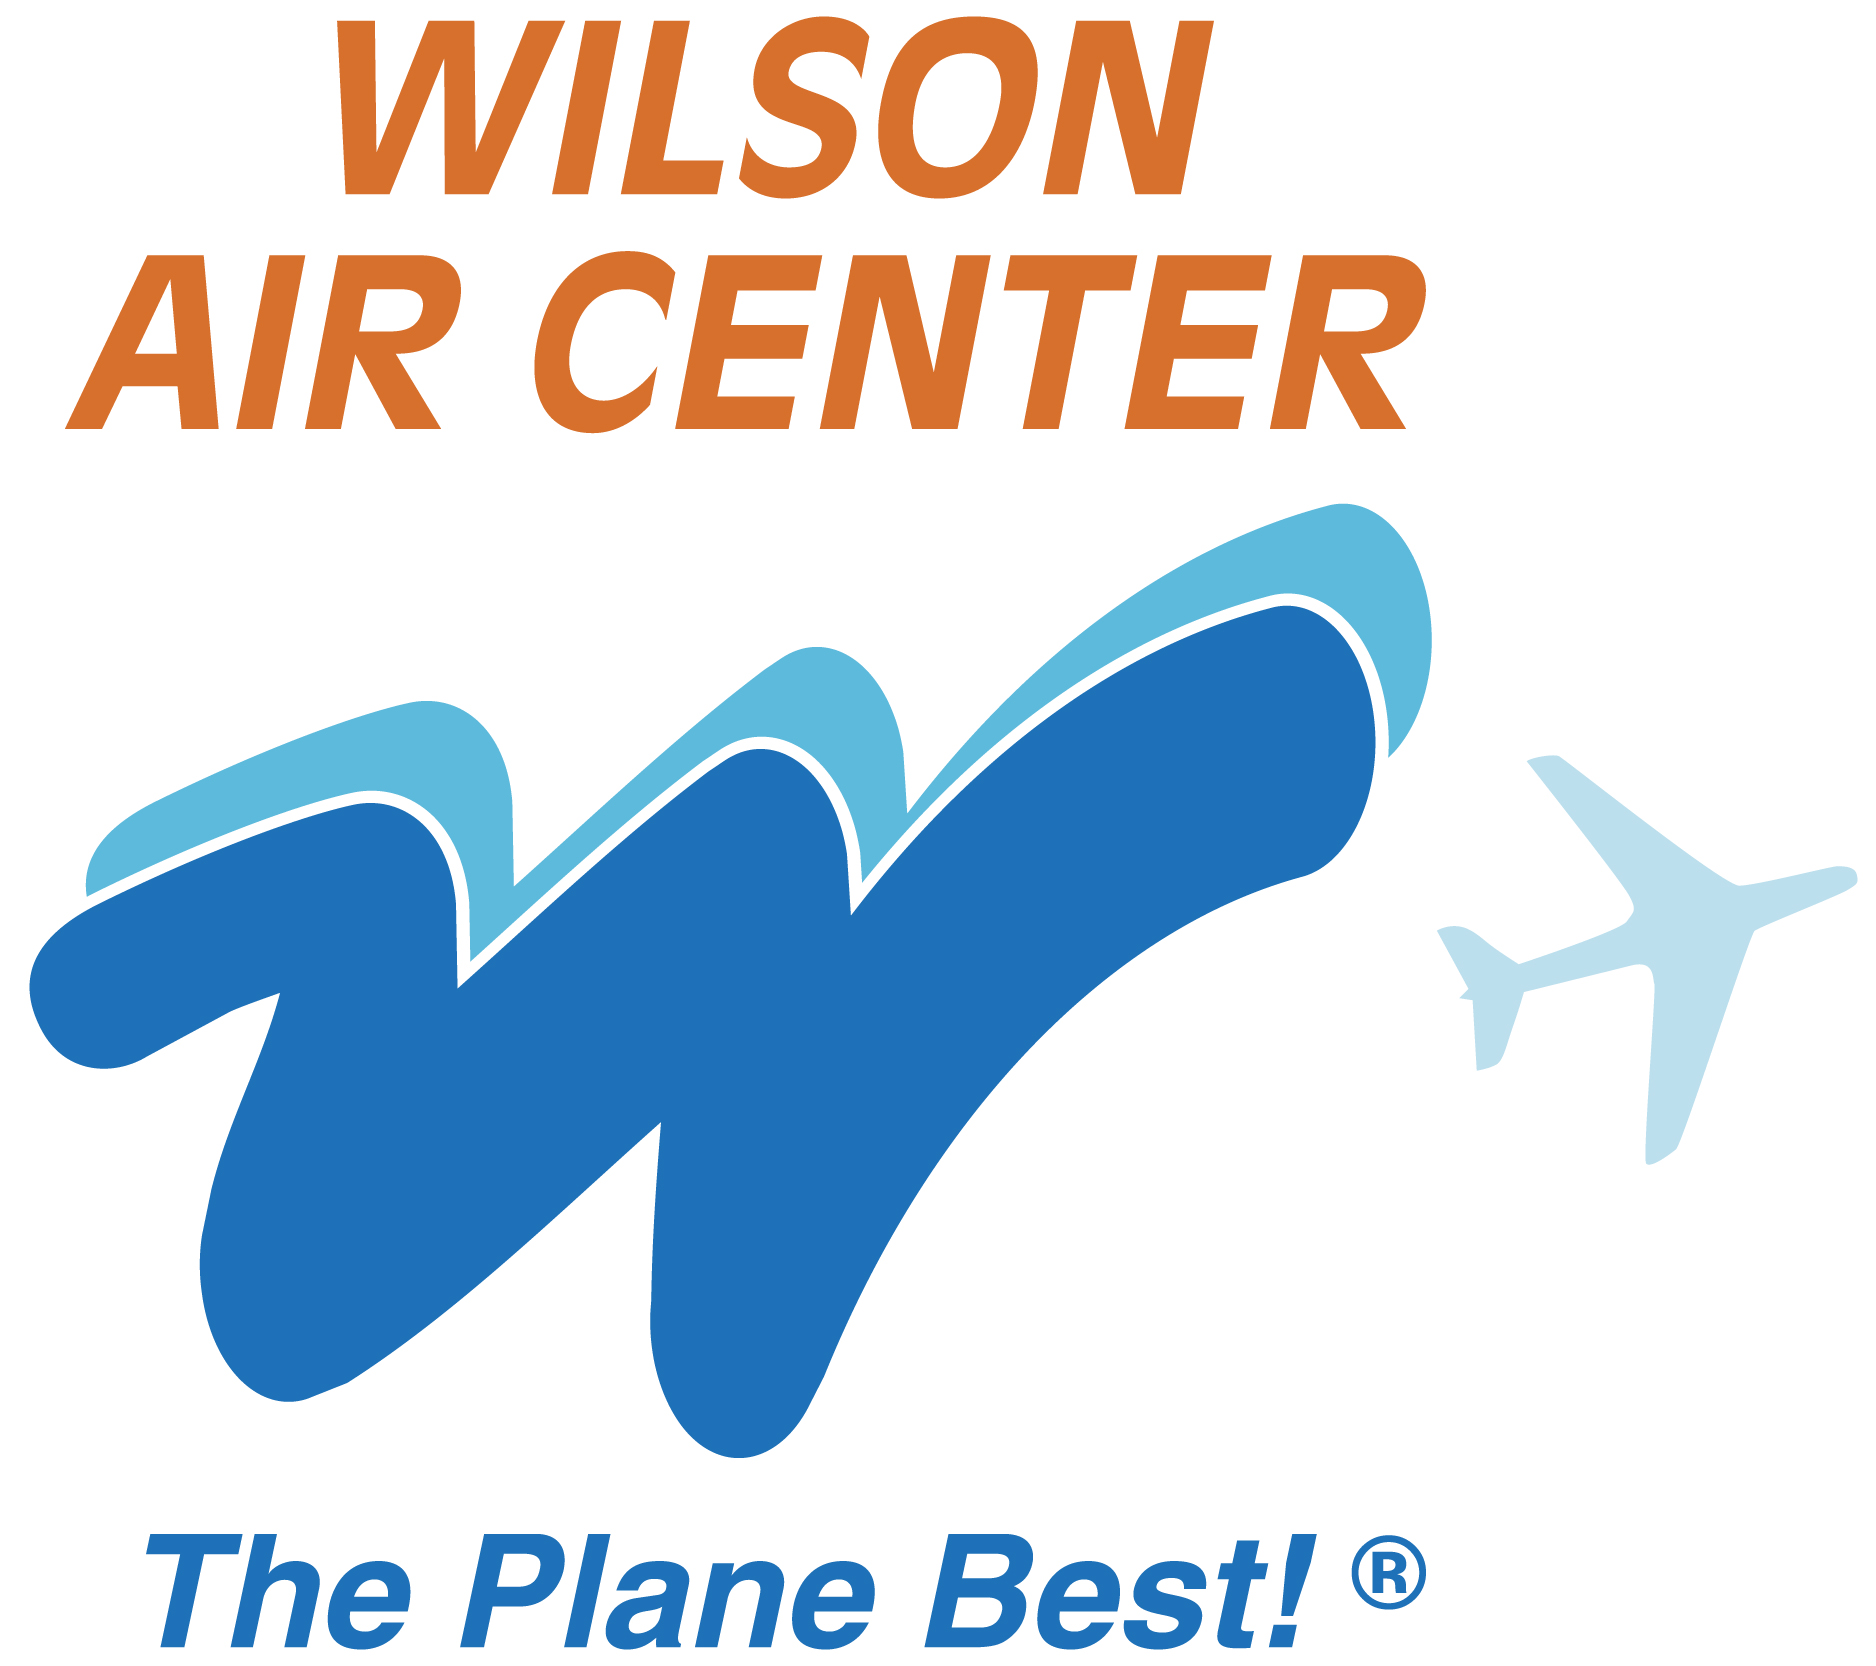 Wilson Air Center logo